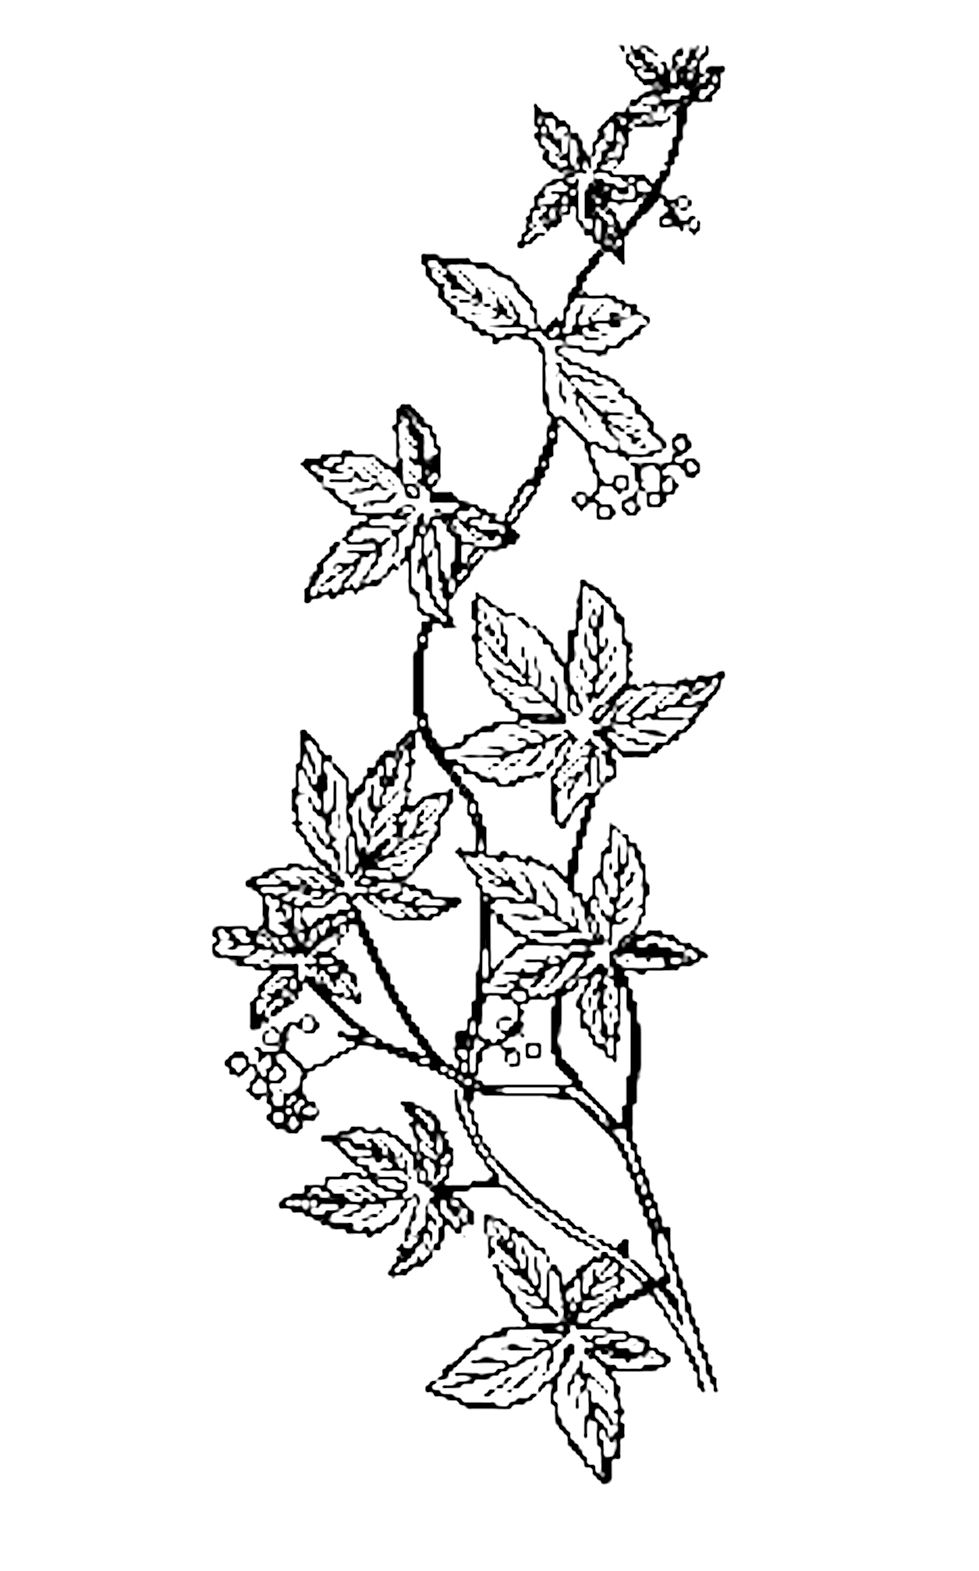 Easy Drawings Of Flowers And Vines Free Printable Hand Drawn